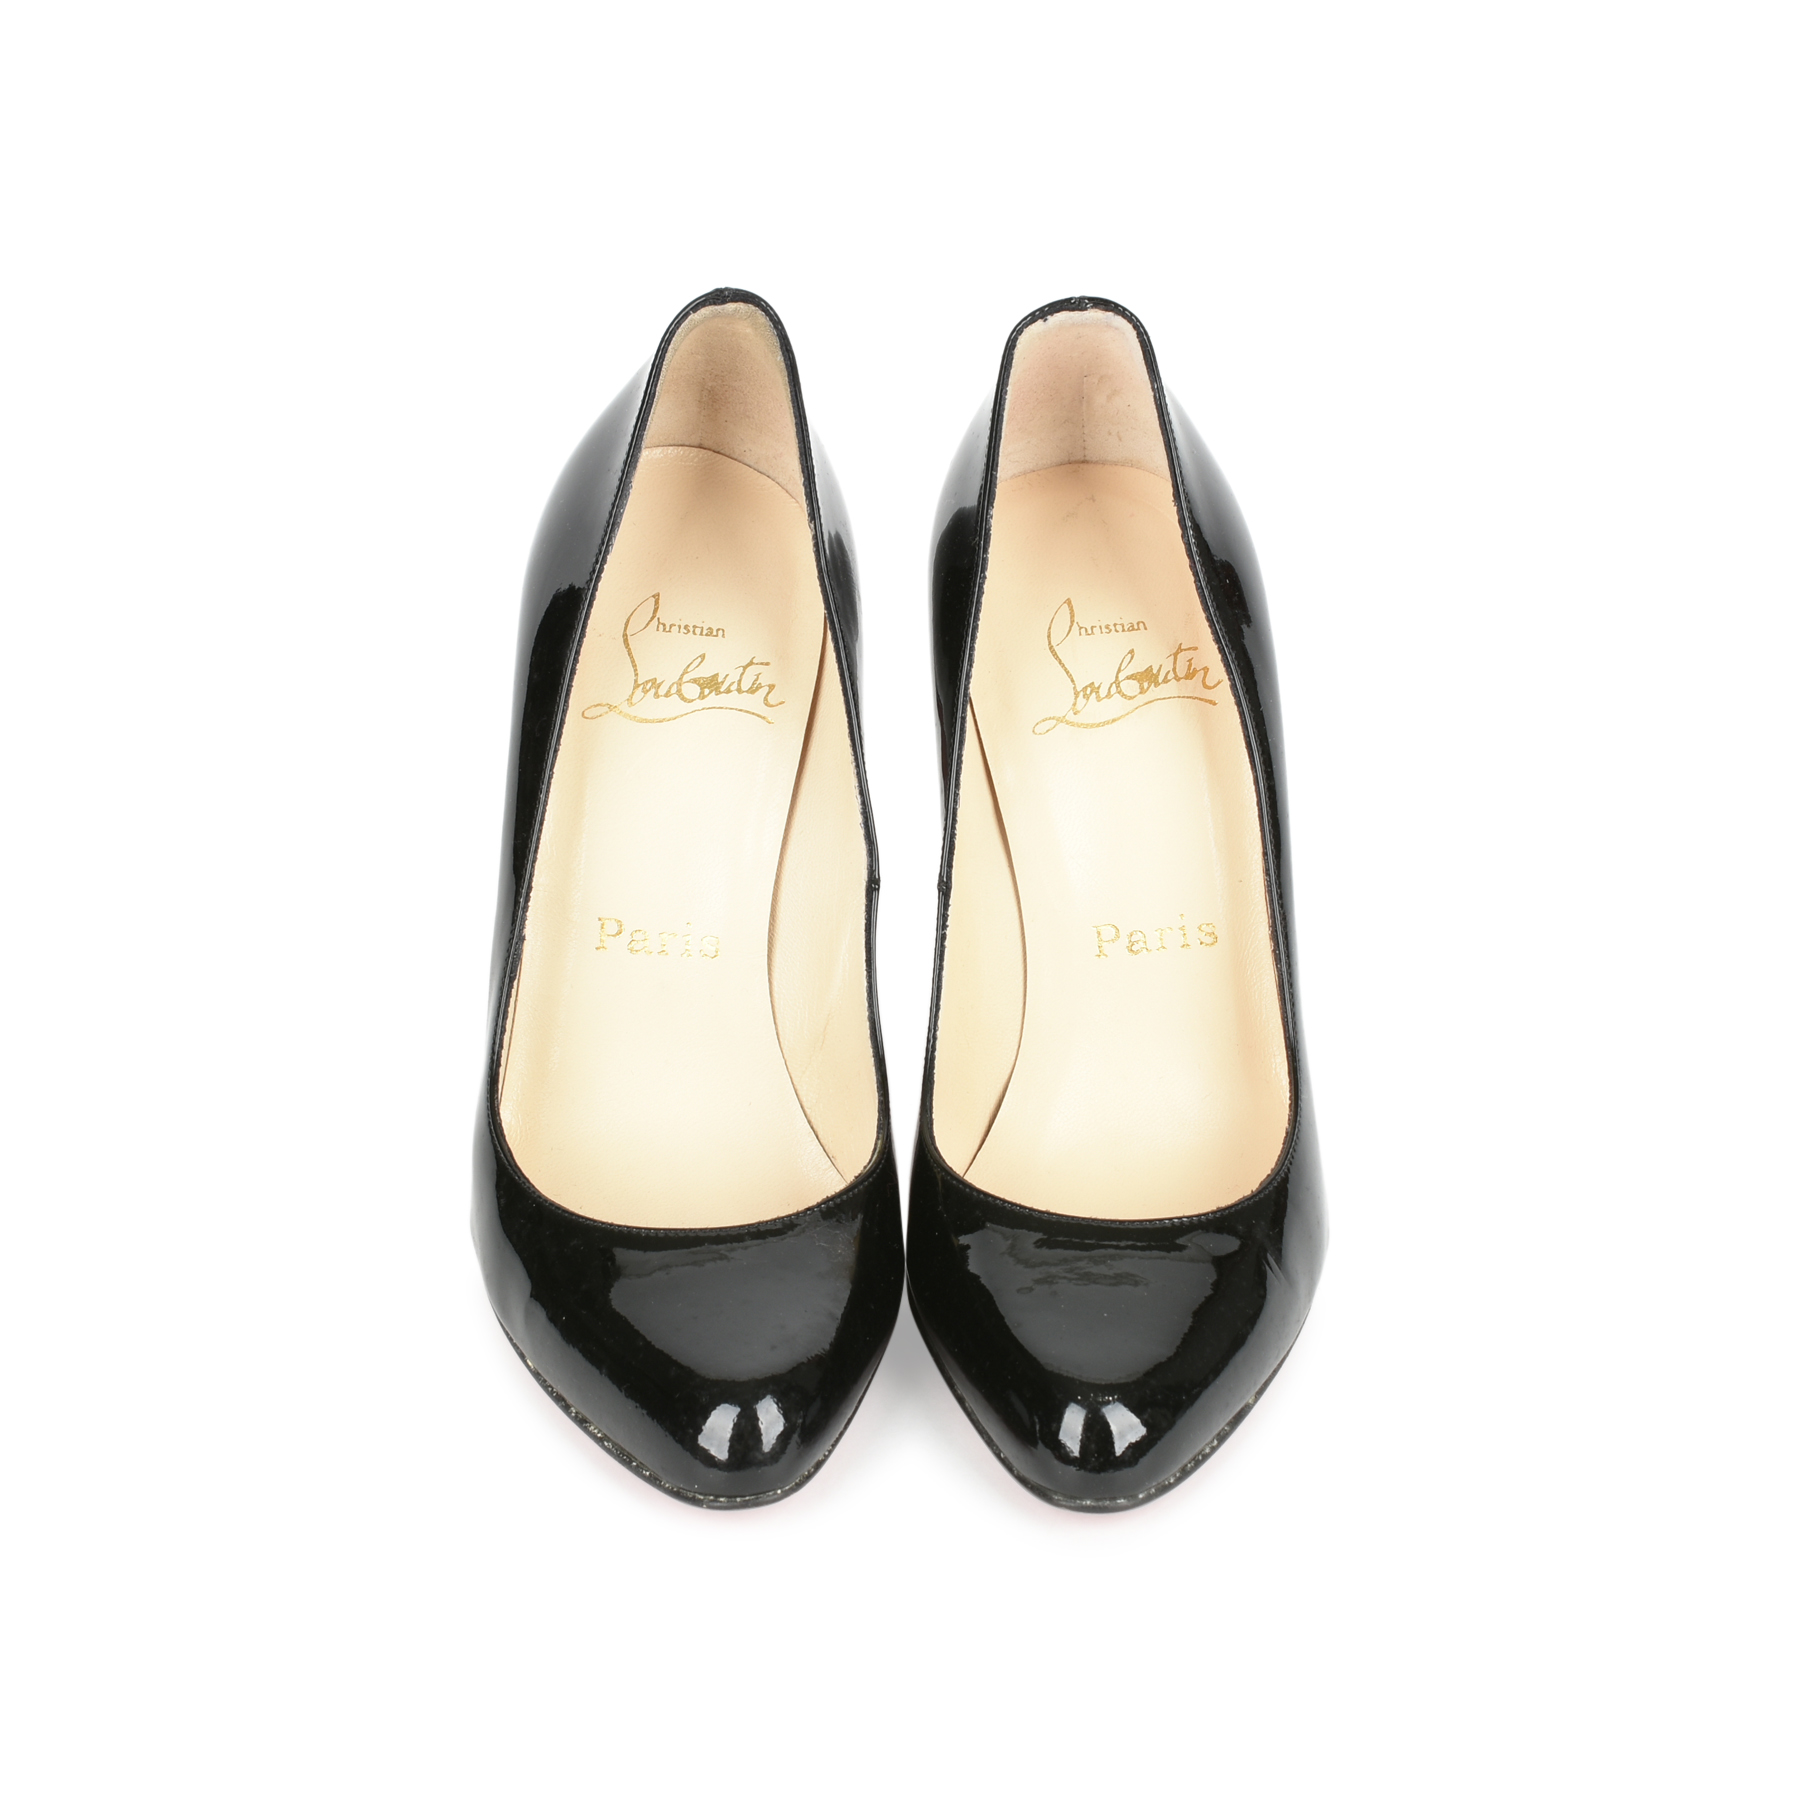 13428f1e8efa Authentic Second Hand Christian Louboutin Patent Simple Pumps  (PSS-080-00256) - THE FIFTH COLLECTION